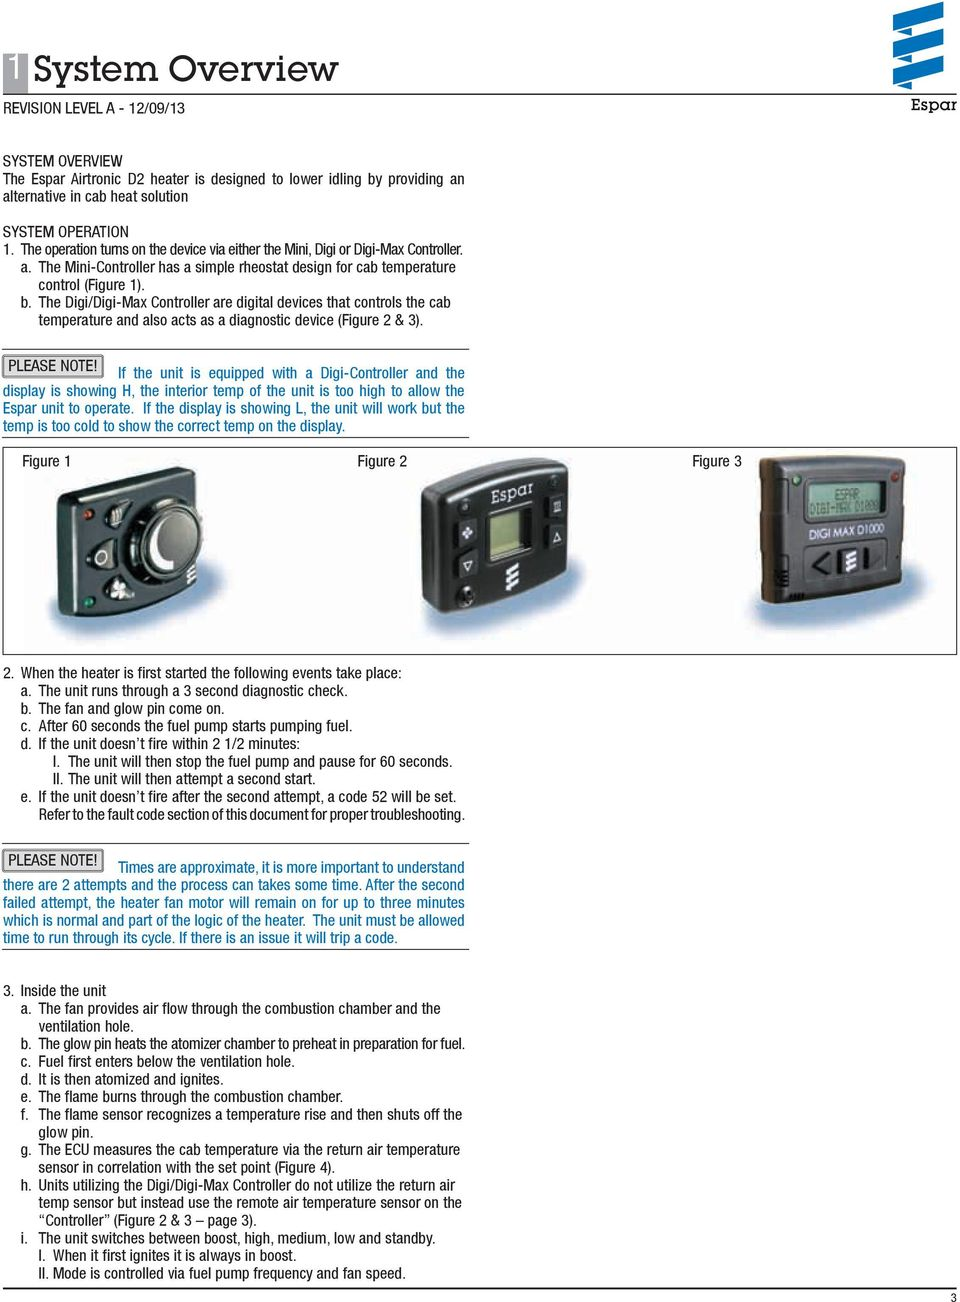 The Digi/Digi-Max Controller are digital devices that controls the cab  temperature and